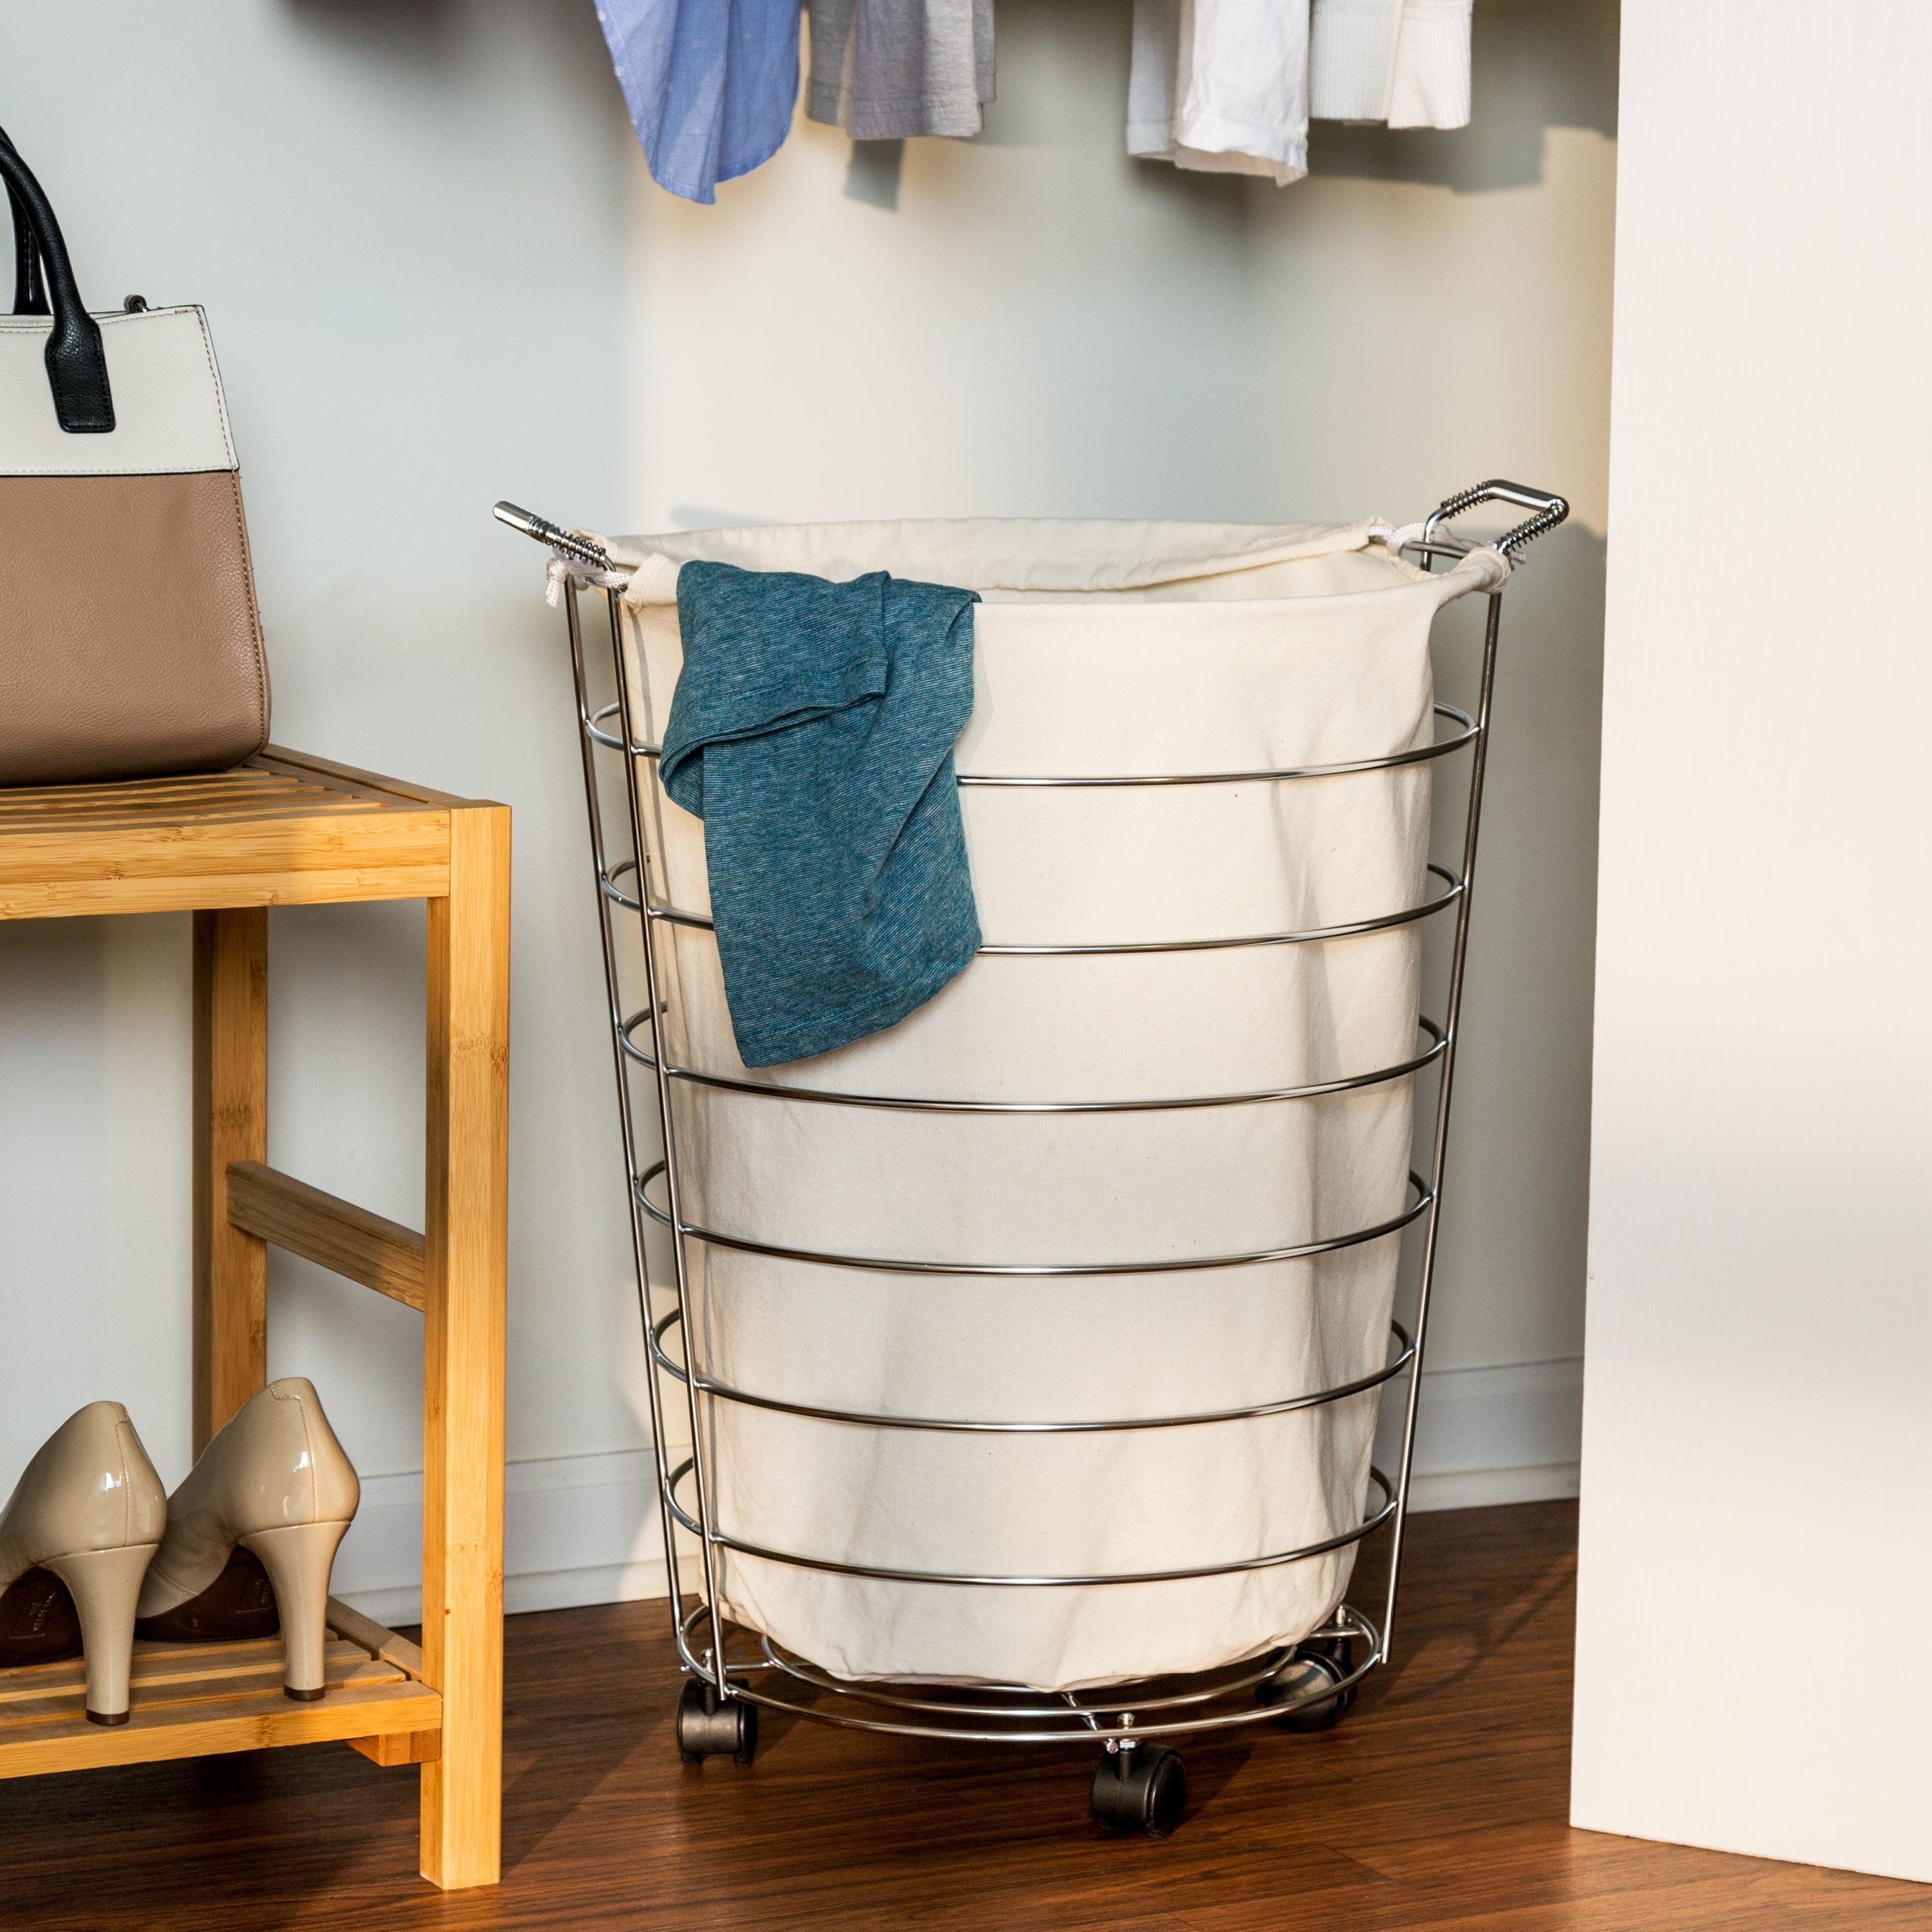 stainless steel hamper on wheels with a white laundry bag inside of it